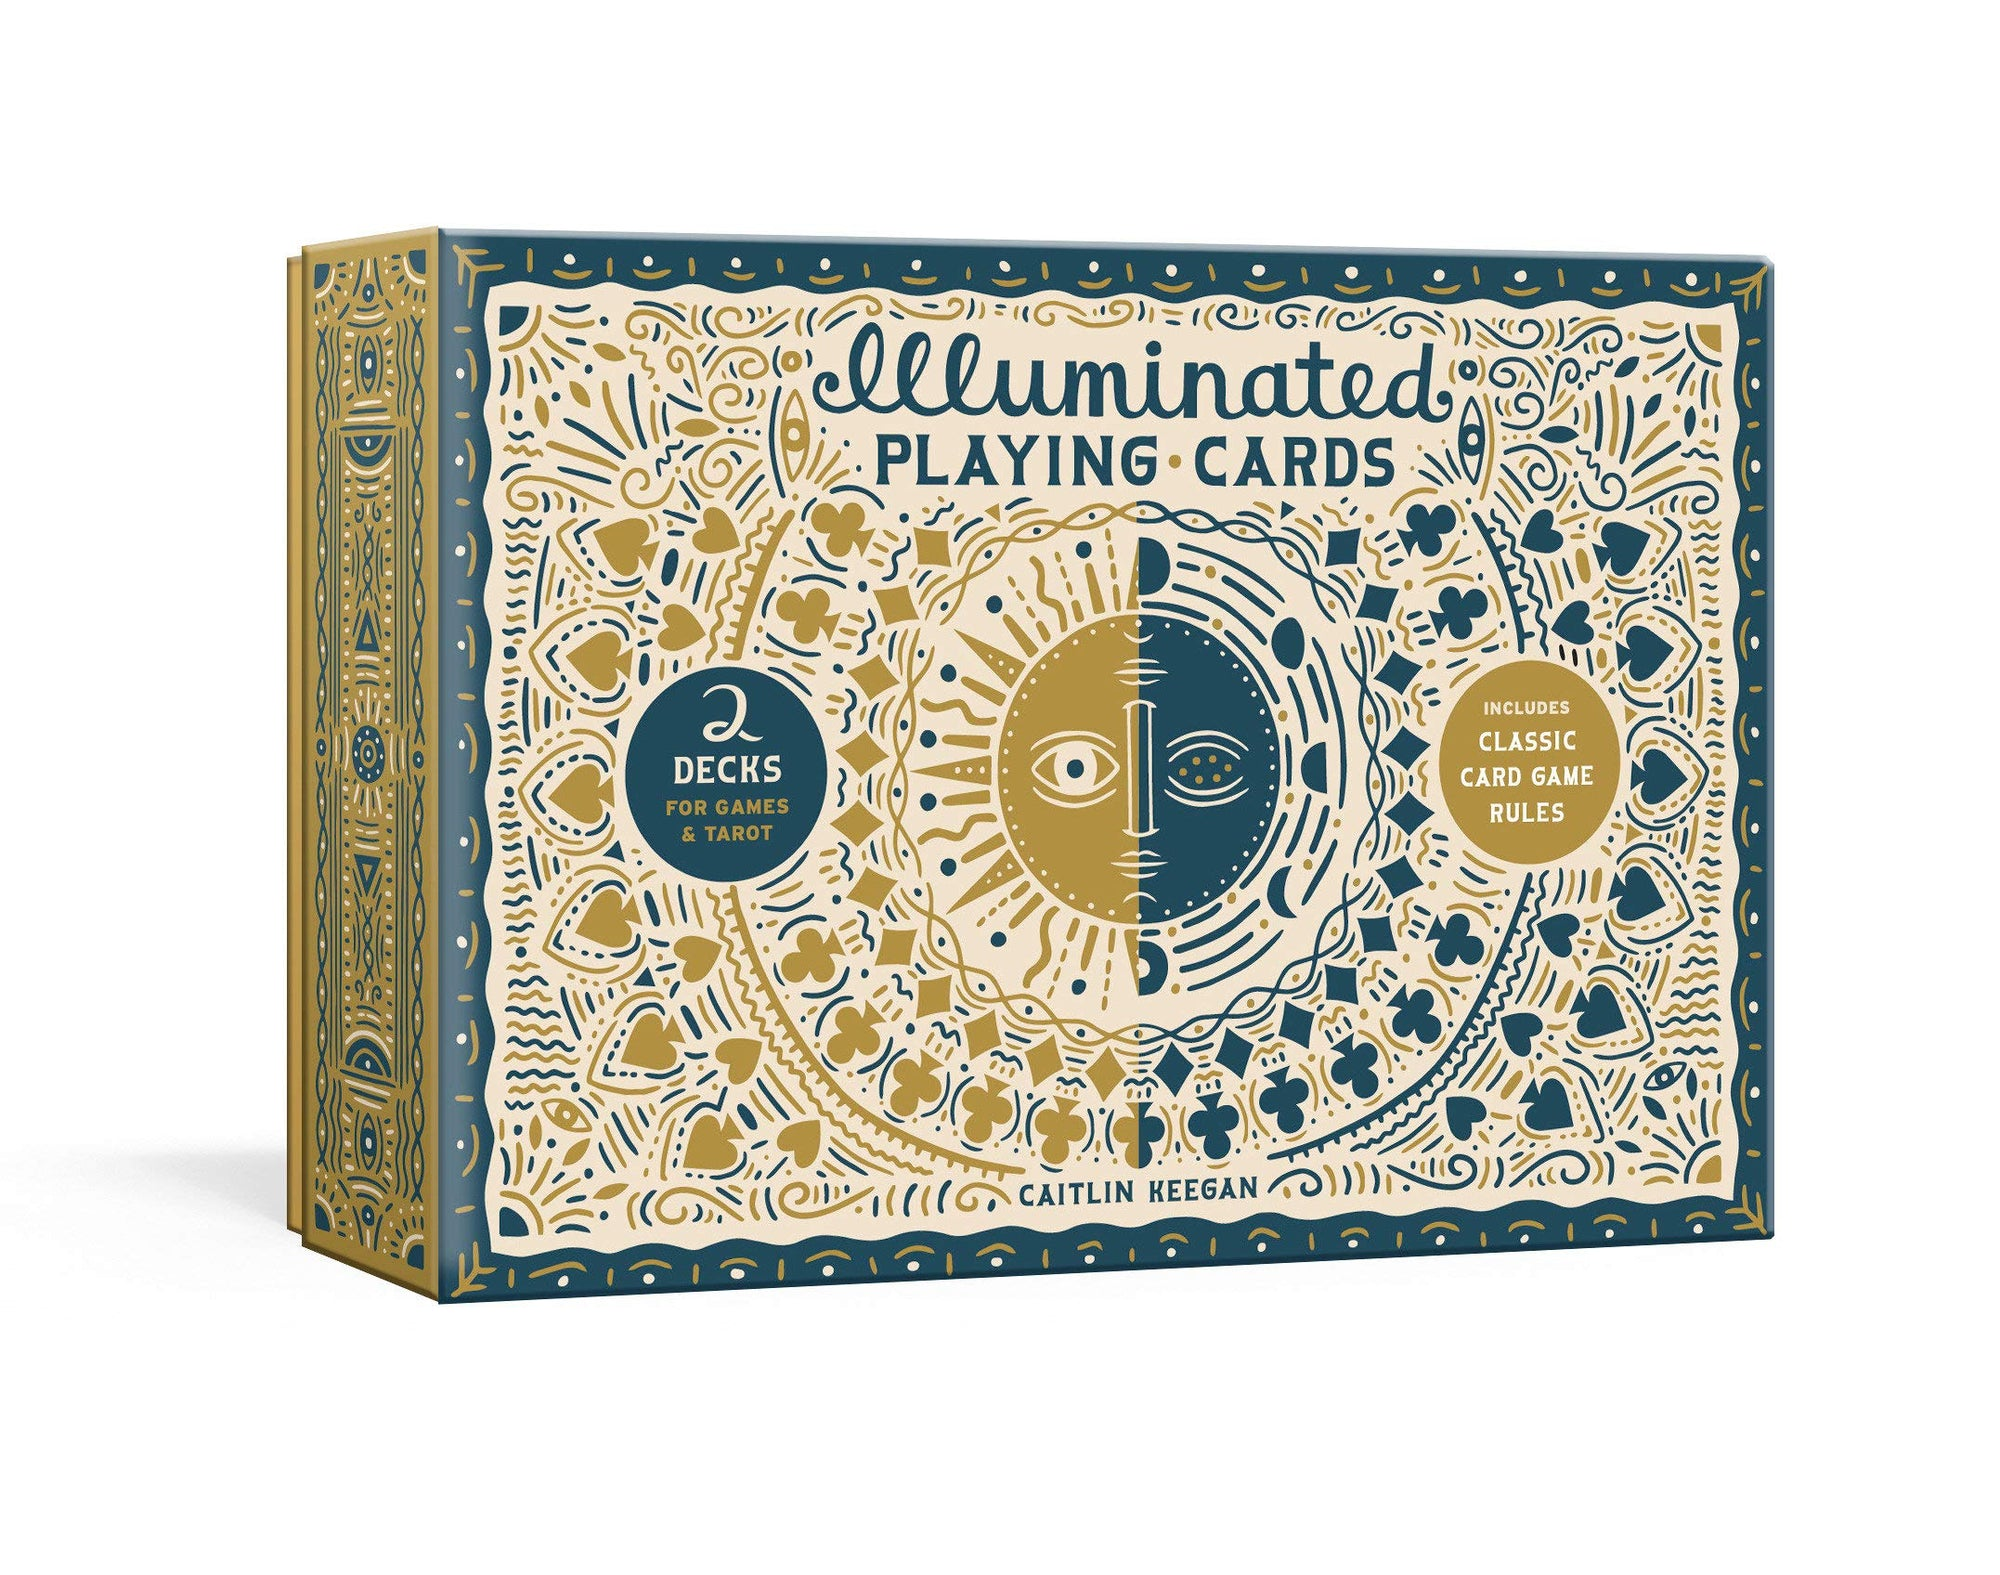 Illuminated Playing Cards: 2 Decks for Games and Tarot